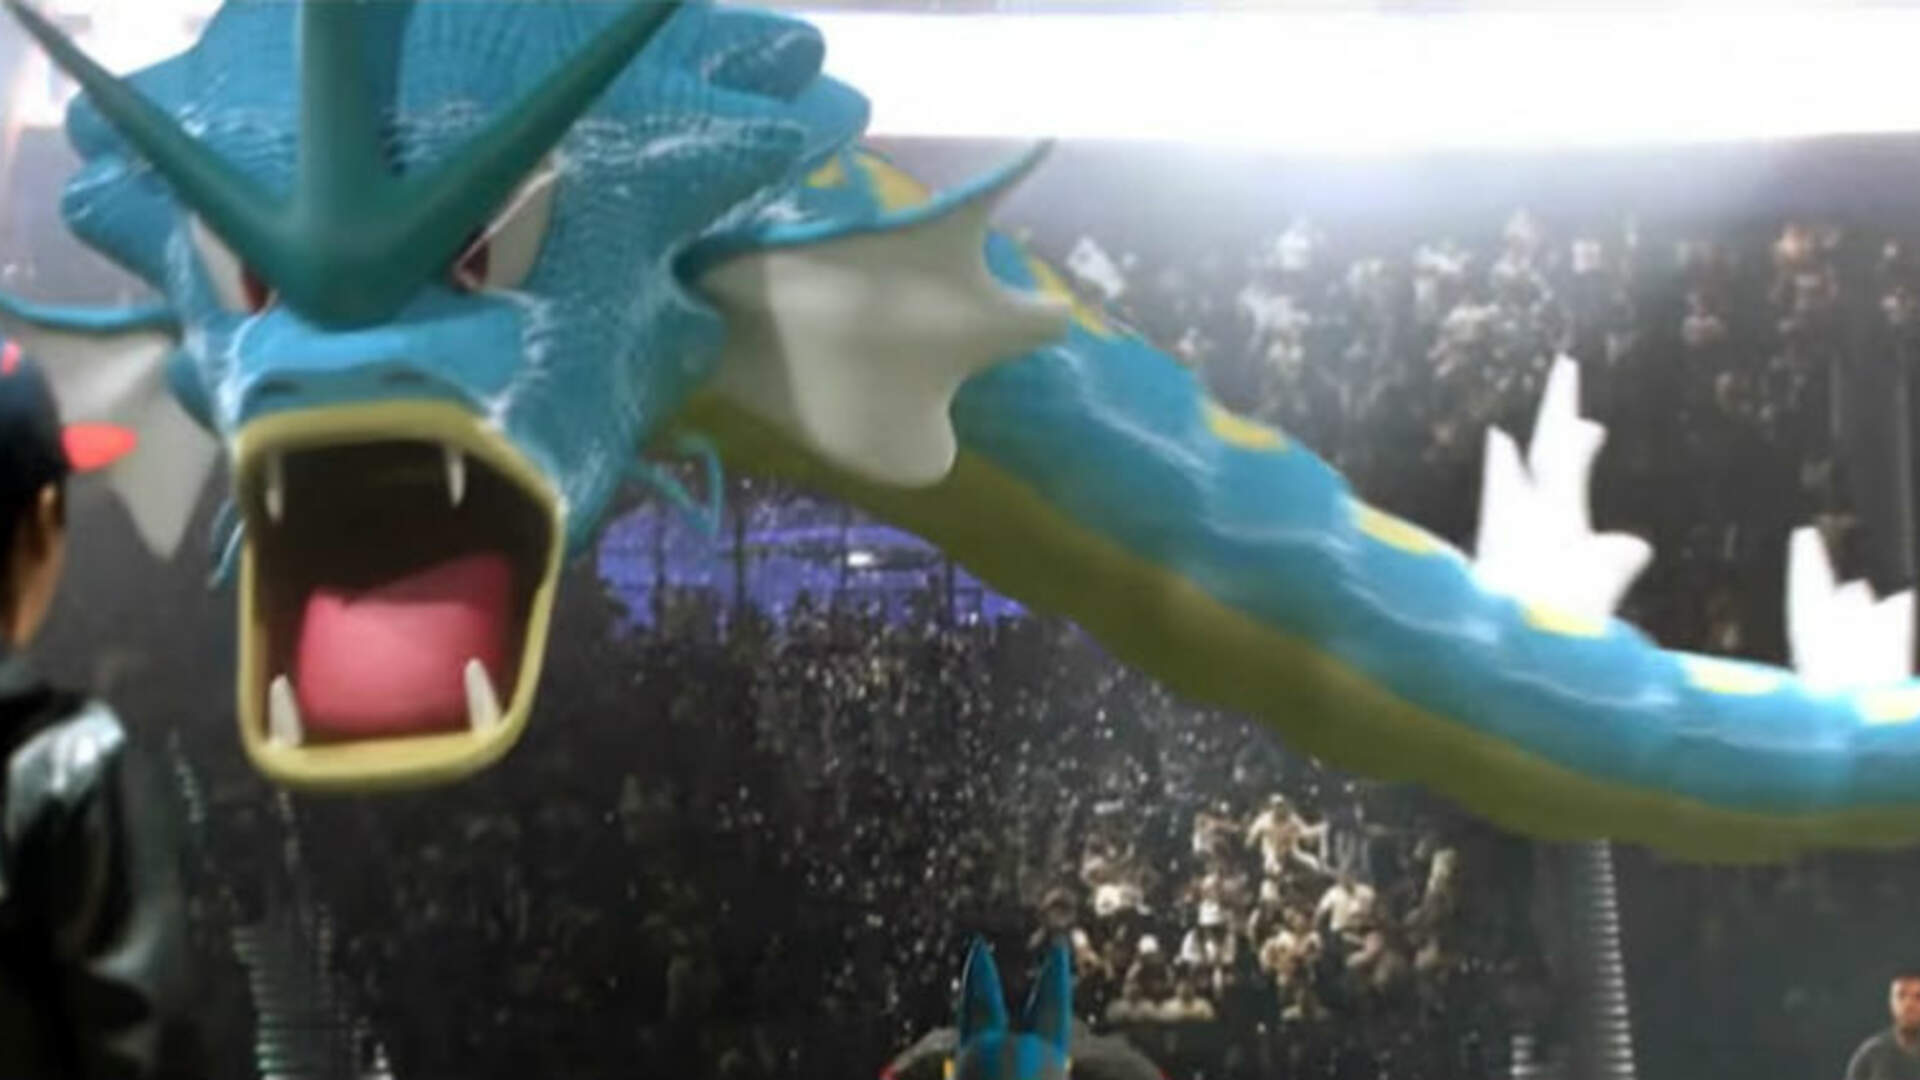 Four Reasons Why Pokémon GO's Long-Term Prospects are Looking Pretty Good